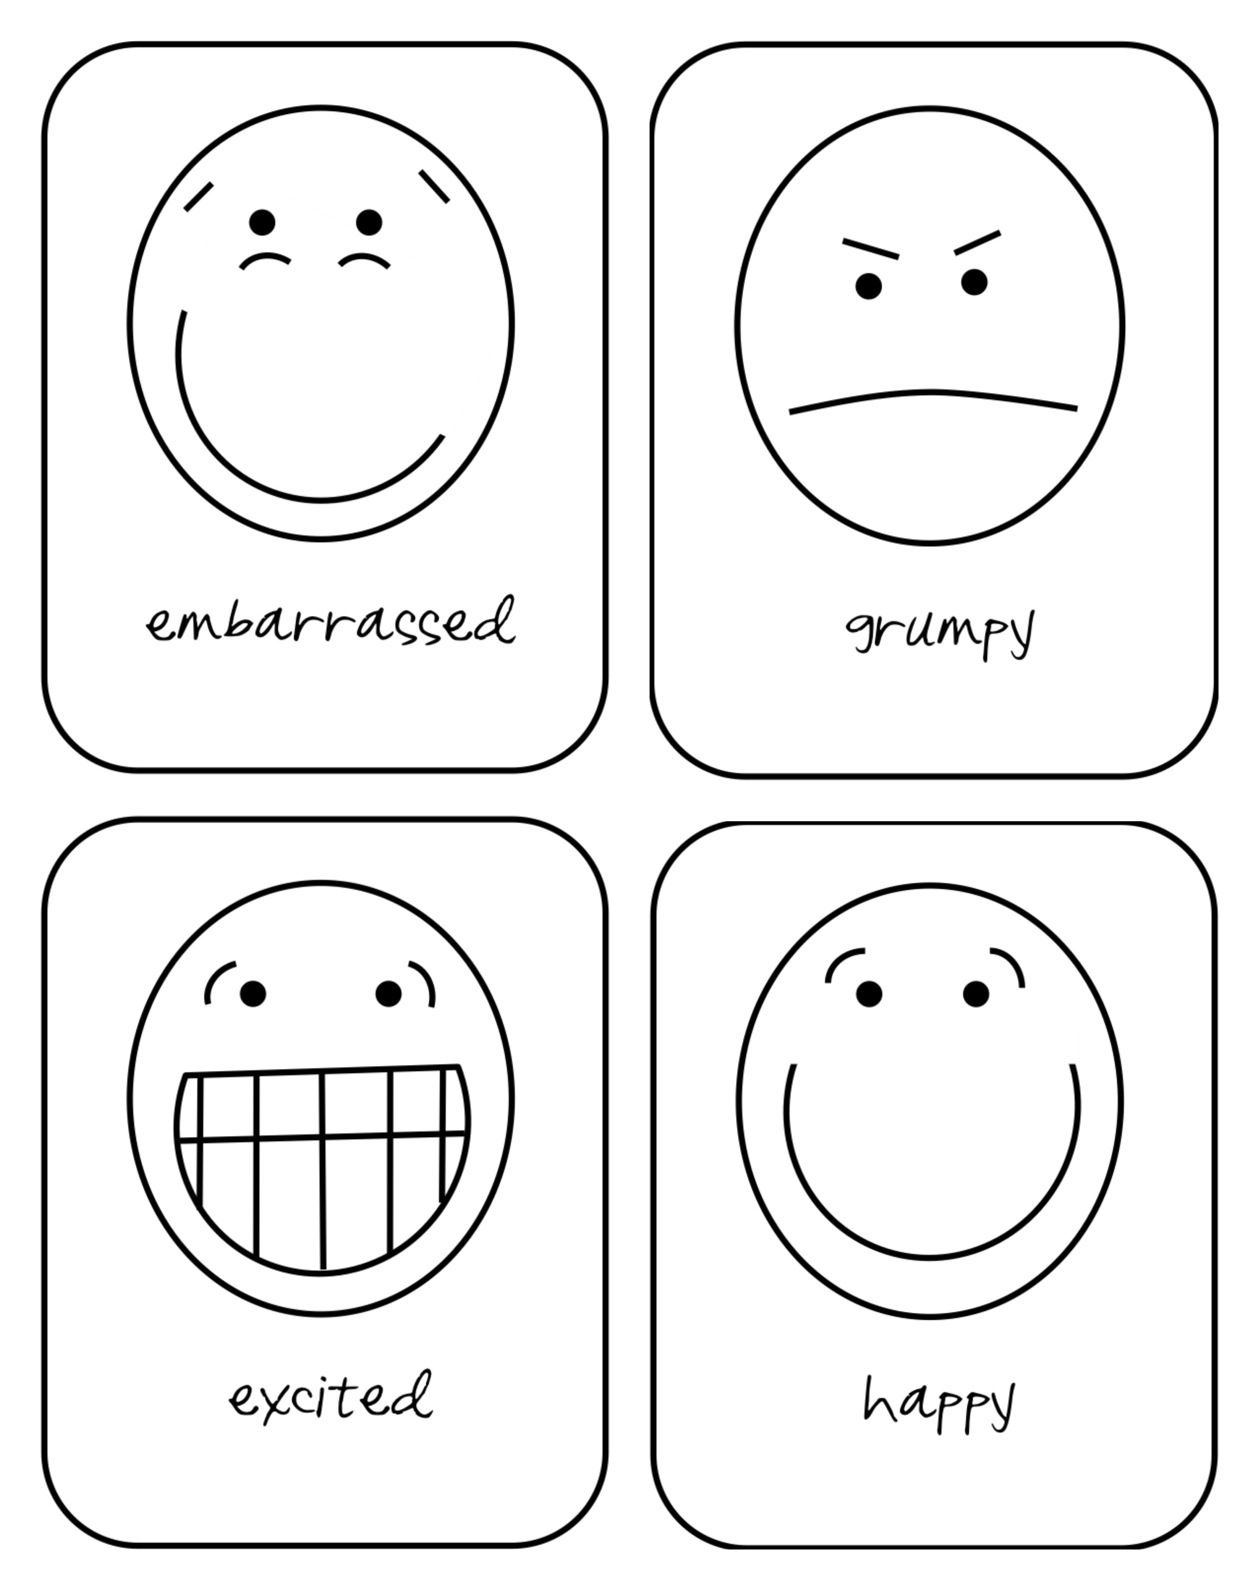 Free Printable Emotion Flash Cards For Your Toddler | Hopes And - Free Printable Pictures Of Emotions